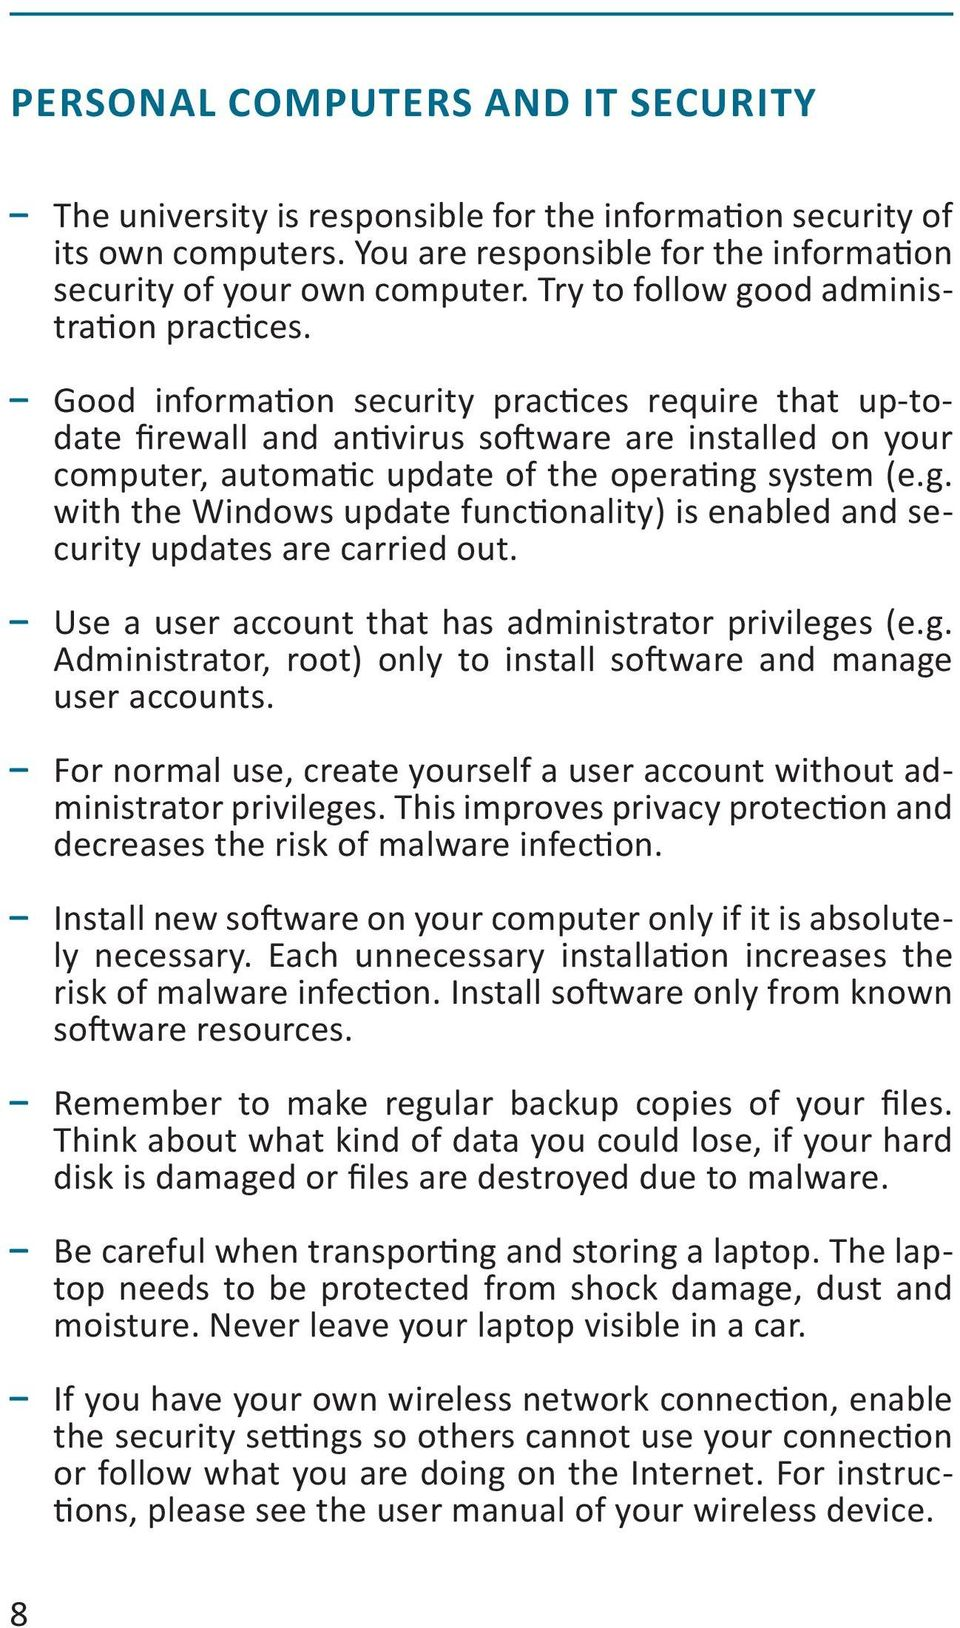 Good information security practices require that up-todate firewall and antivirus software are installed on your computer, automatic update of the operating